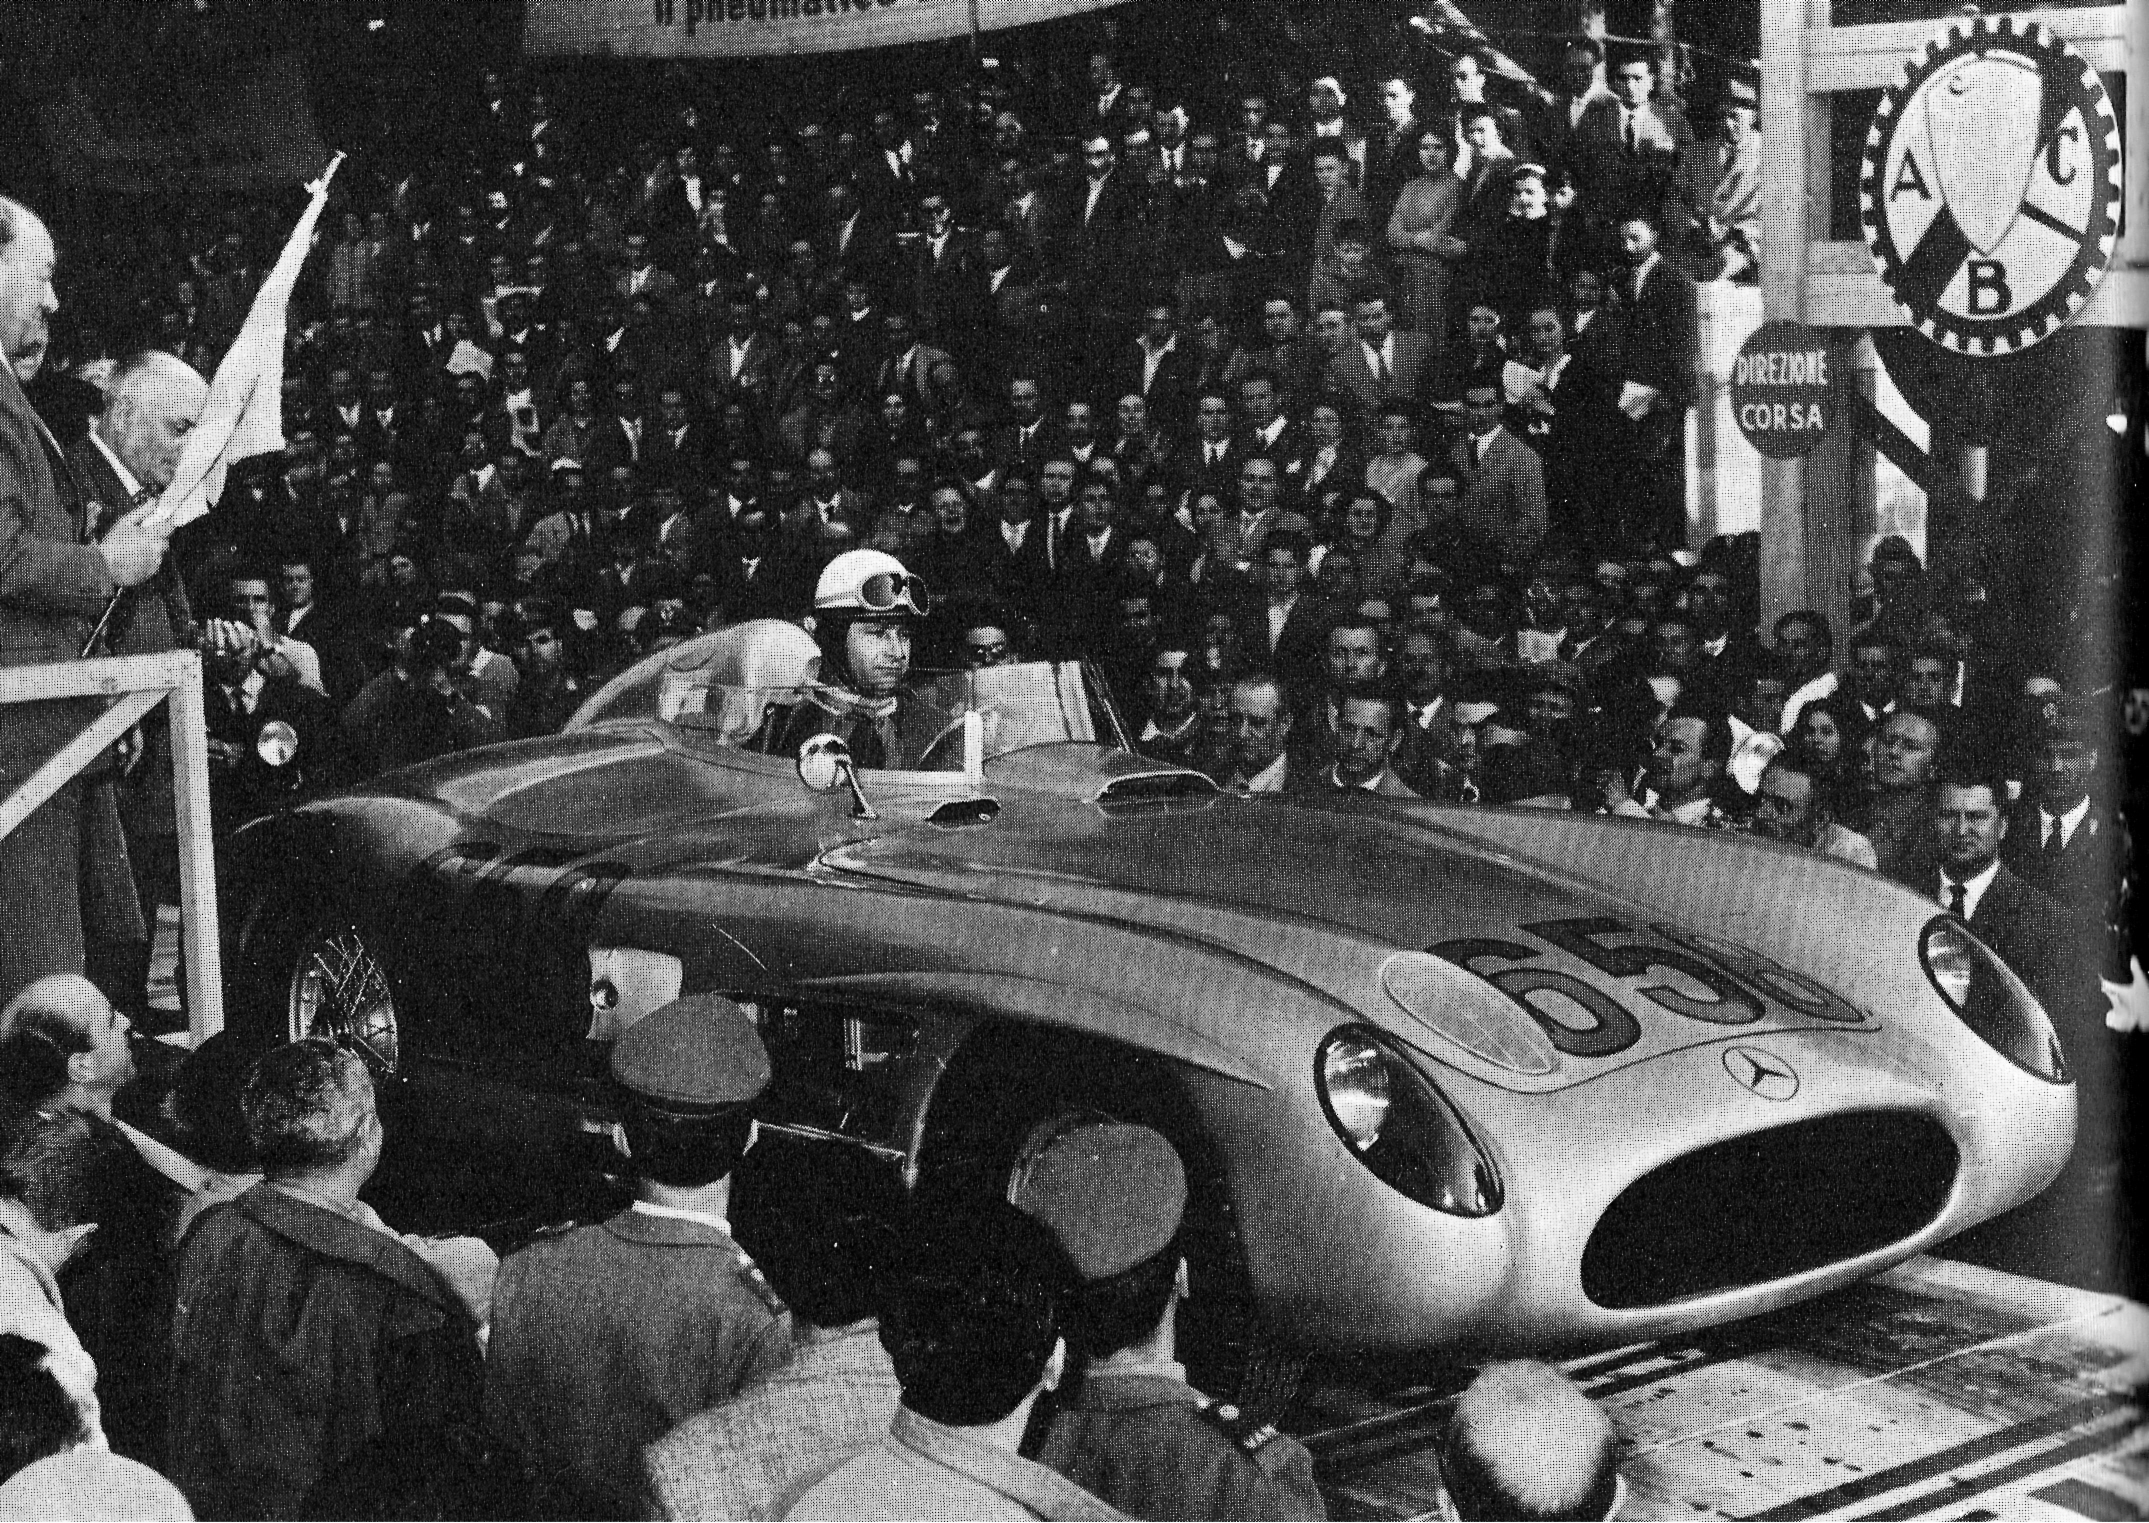 Fangio's 300 SLR, at the line